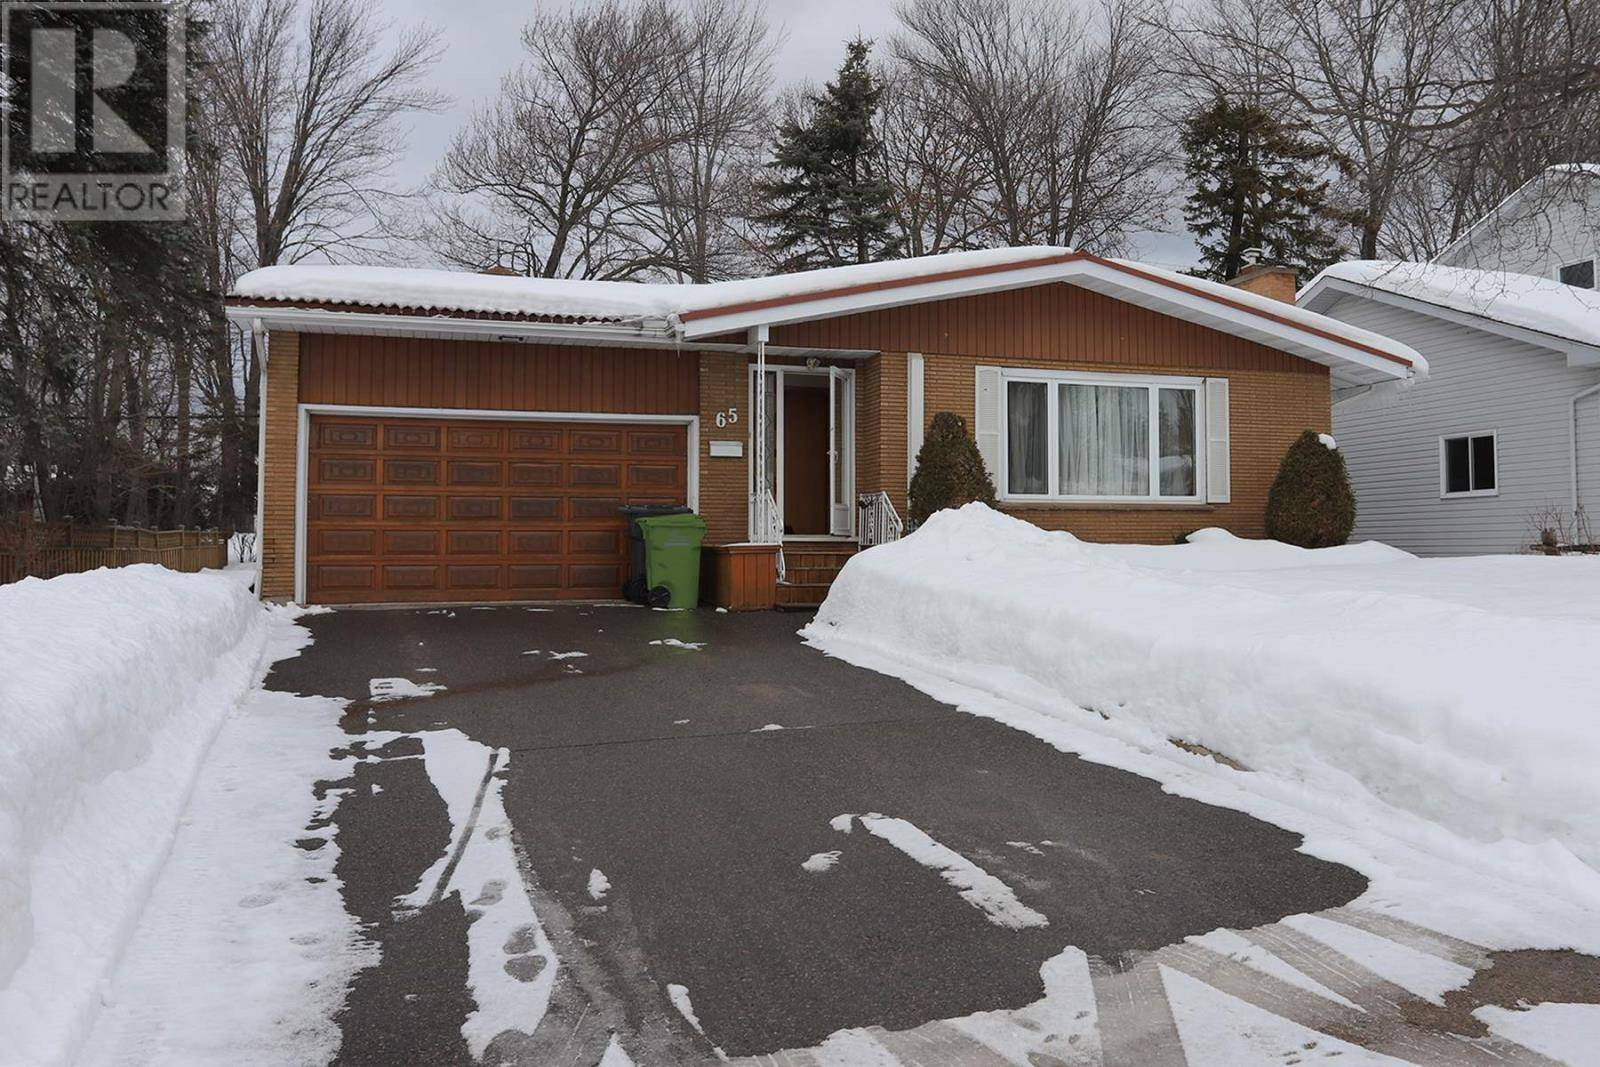 House for sale at 65 Huntington Pk Sault Ste. Marie Ontario - MLS: SM127874